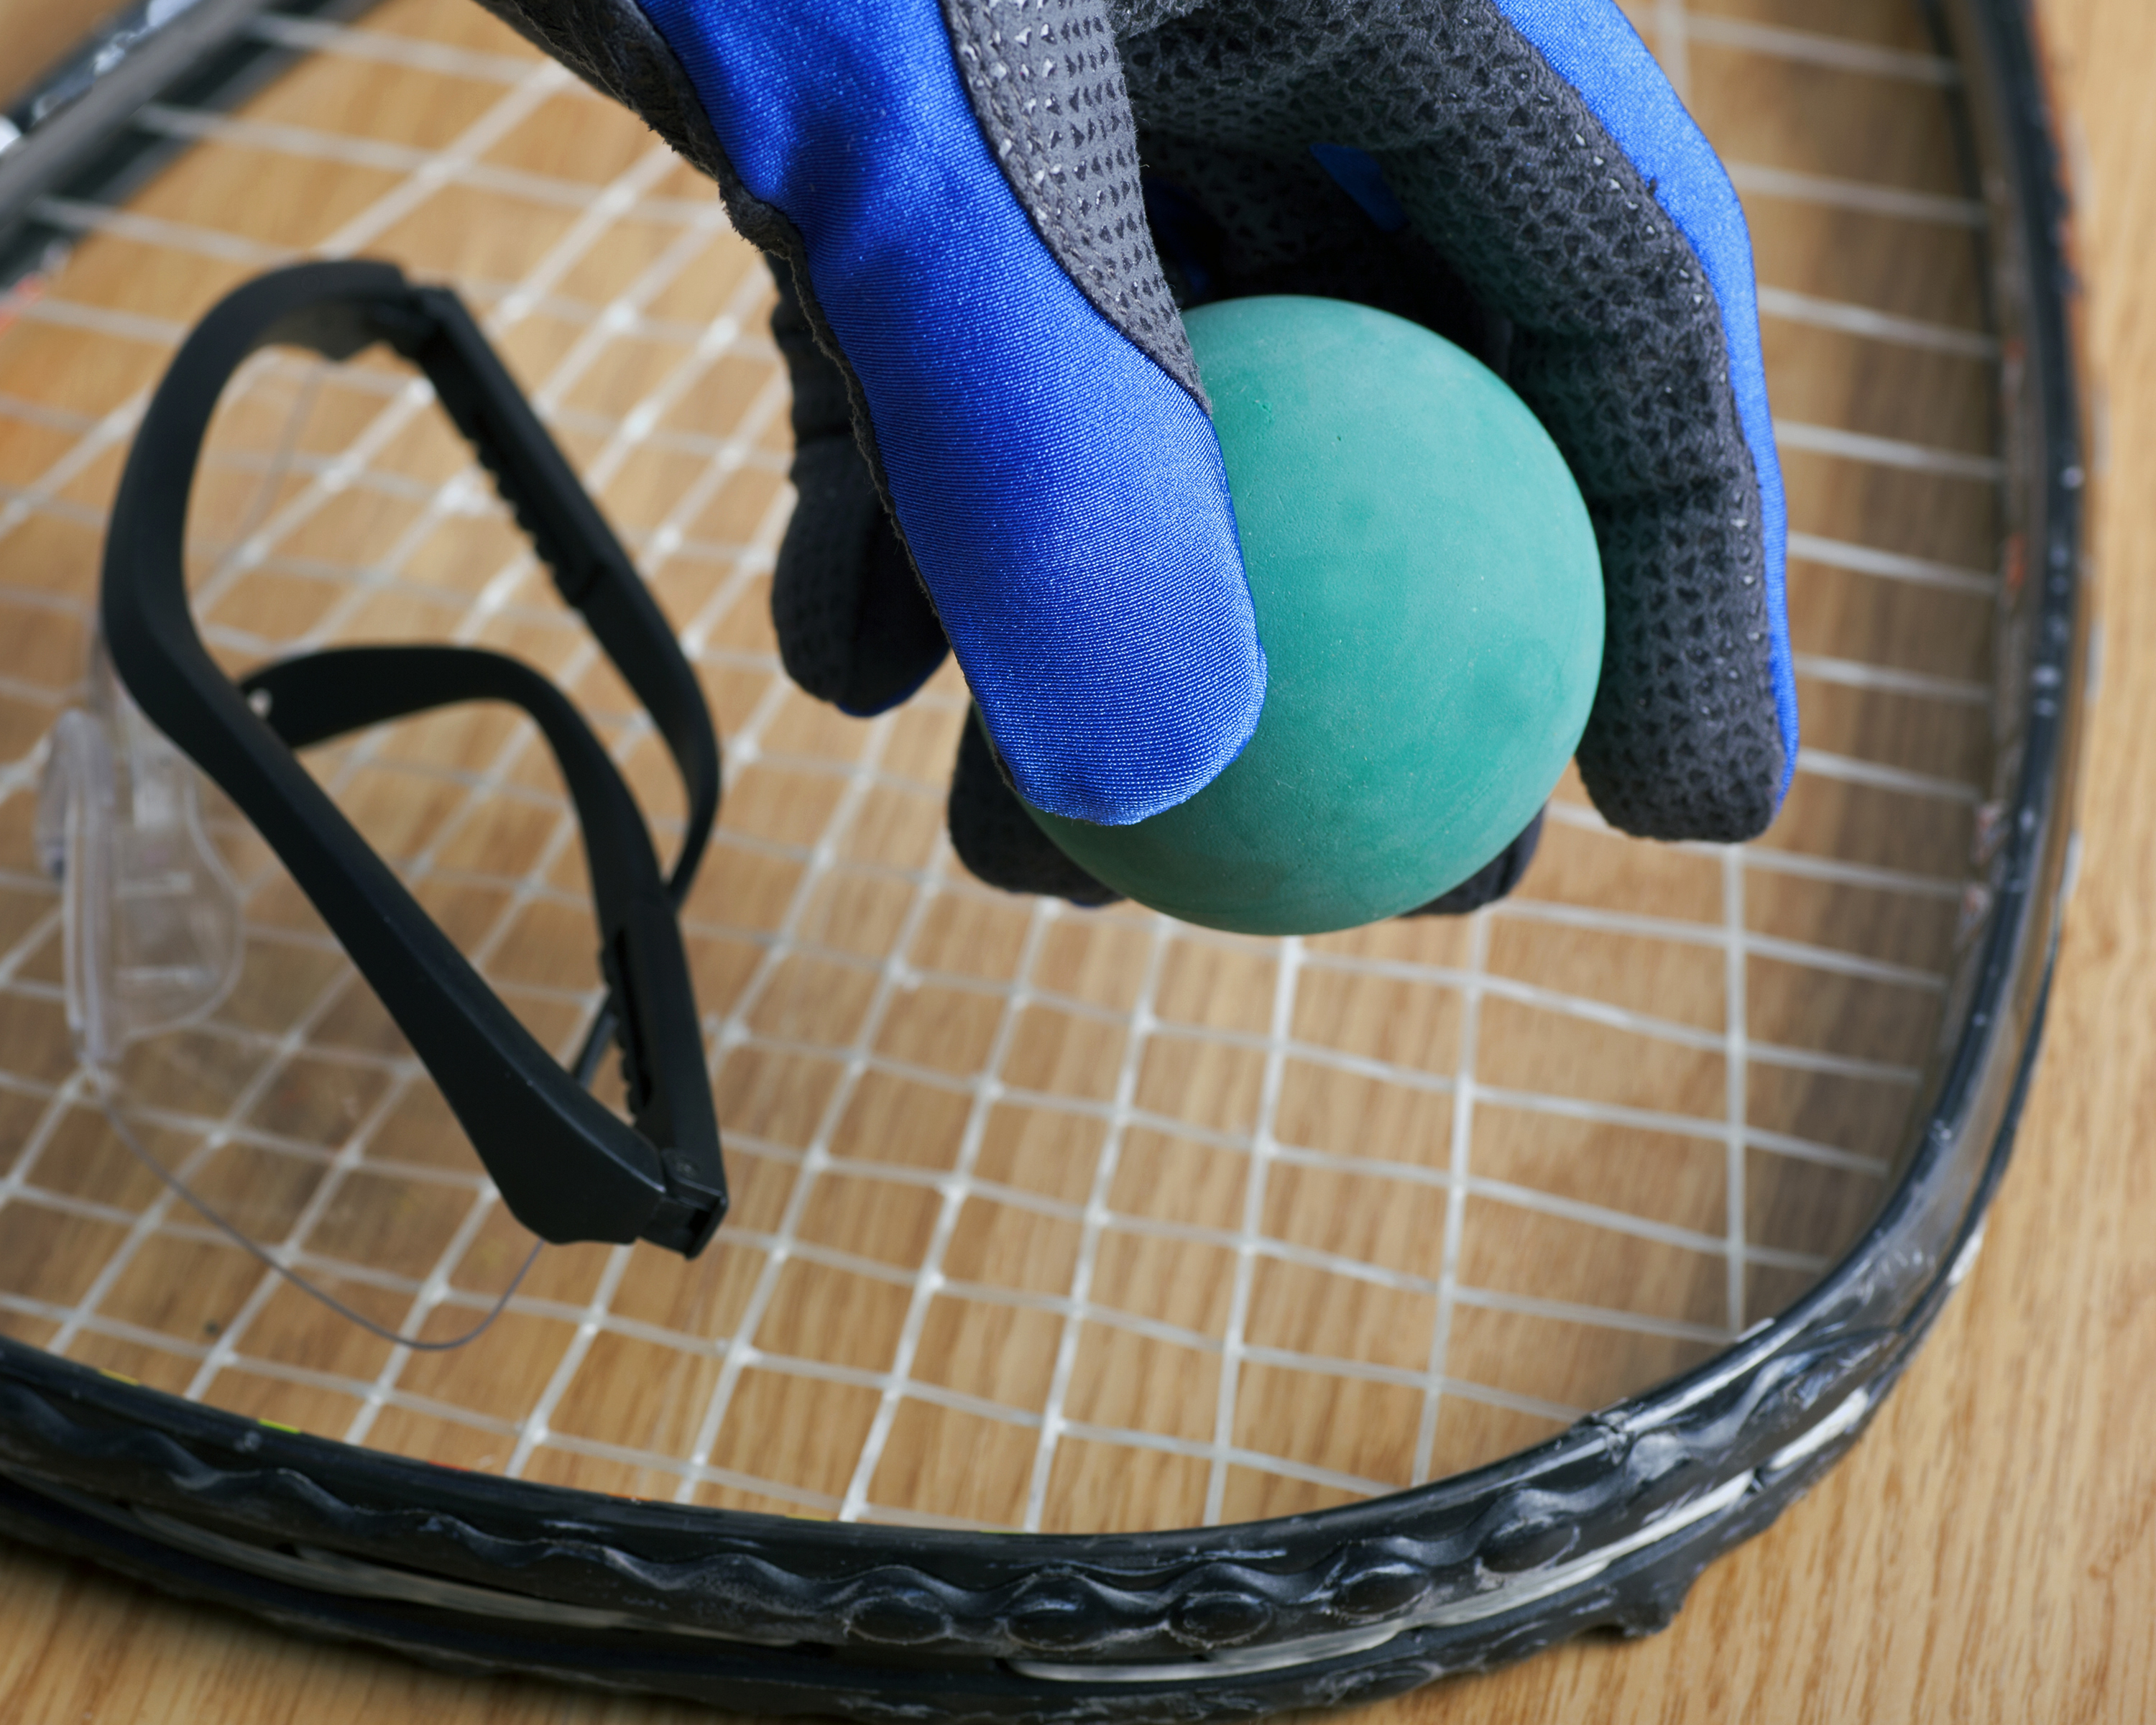 racquetball racquet with protective equipment